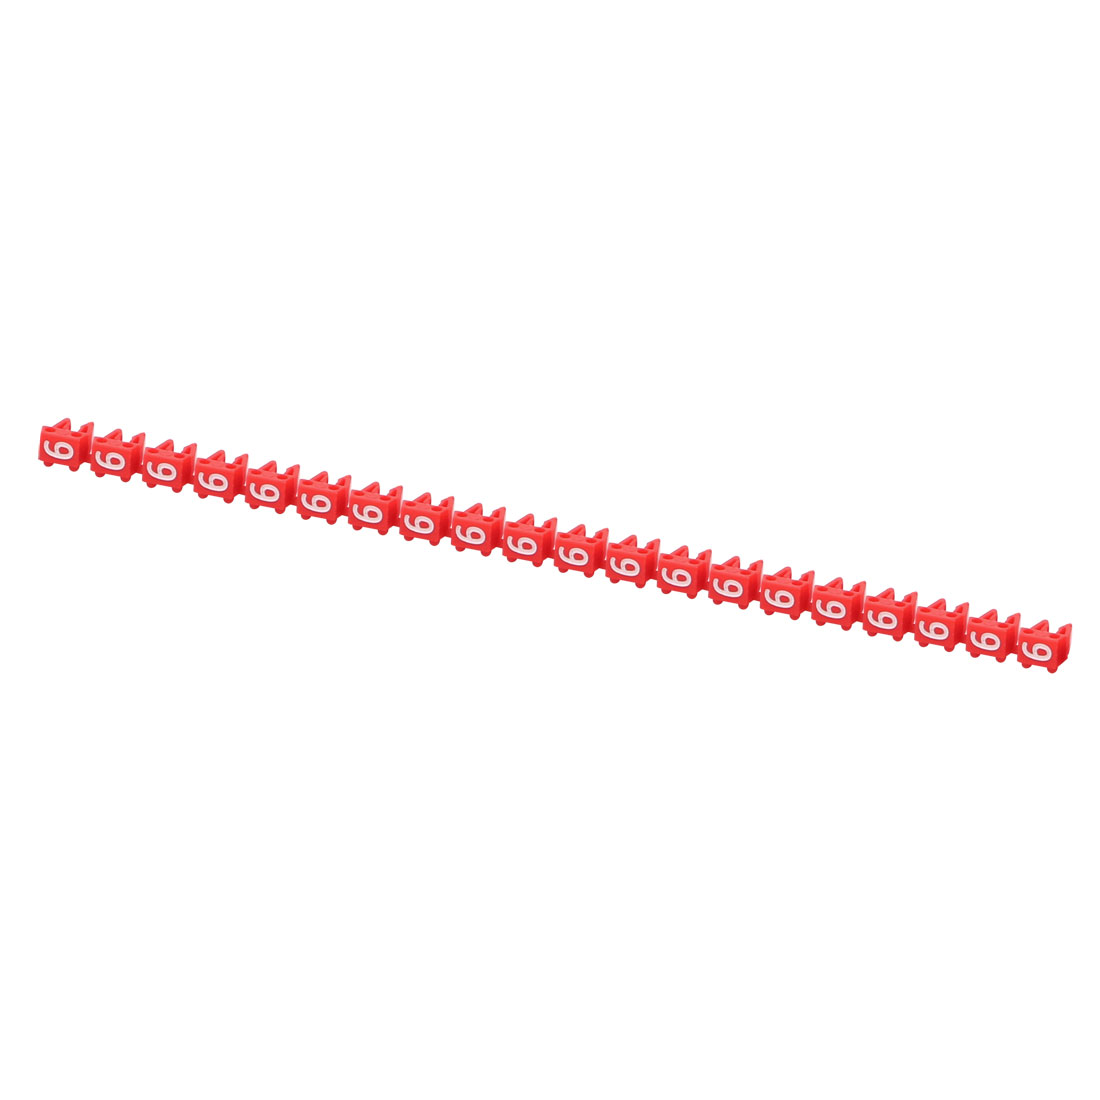 20Pcs Letters 6 Network Cable Labels Markers Red for 1.0-3.0mm Dia Cable